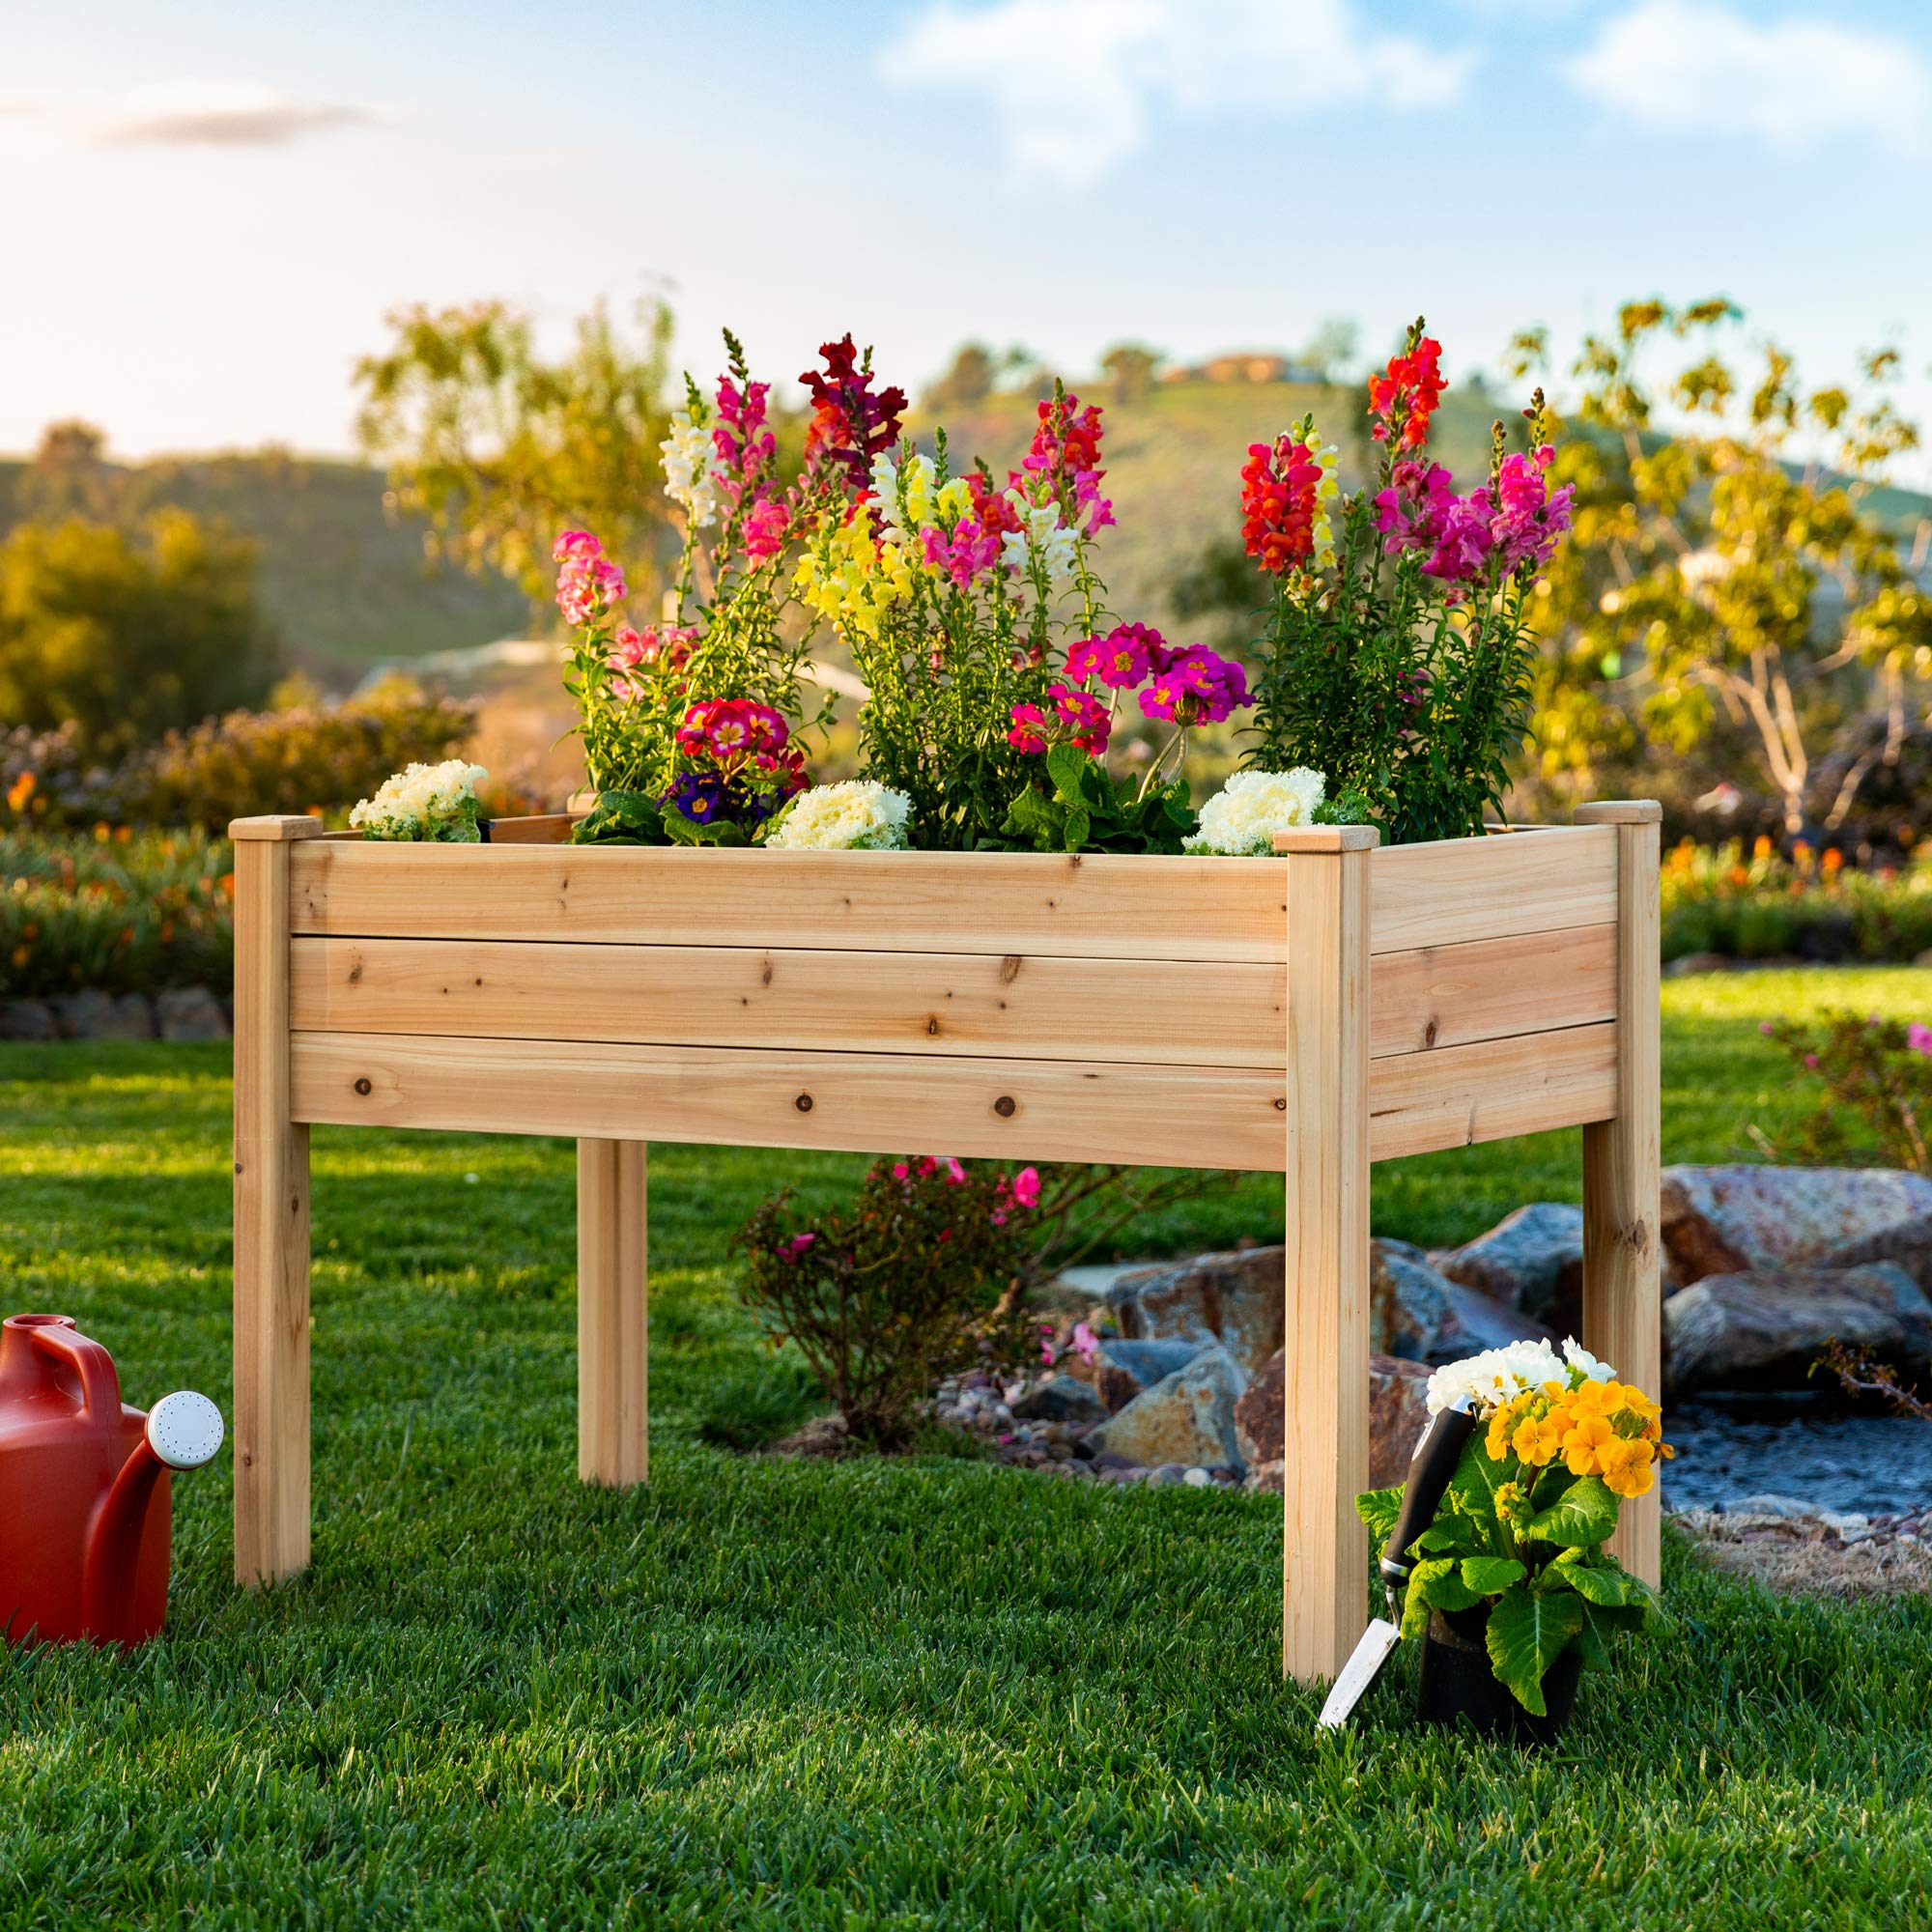 Best Choice Products Raised Garden Bed 48x24x30in Elevated